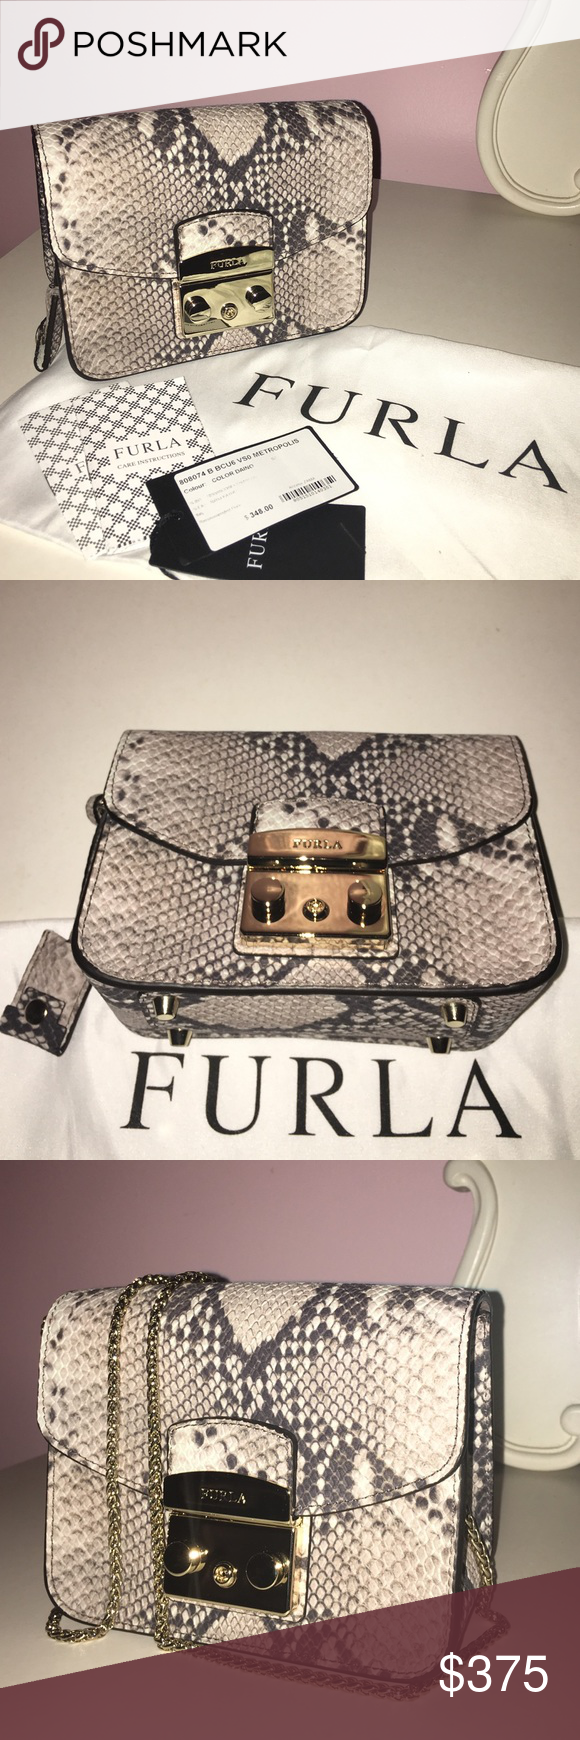 36ce610cc229 Limited Edition Furla Metropolis Mini Bag The chicest mini bag on the market!  This limited